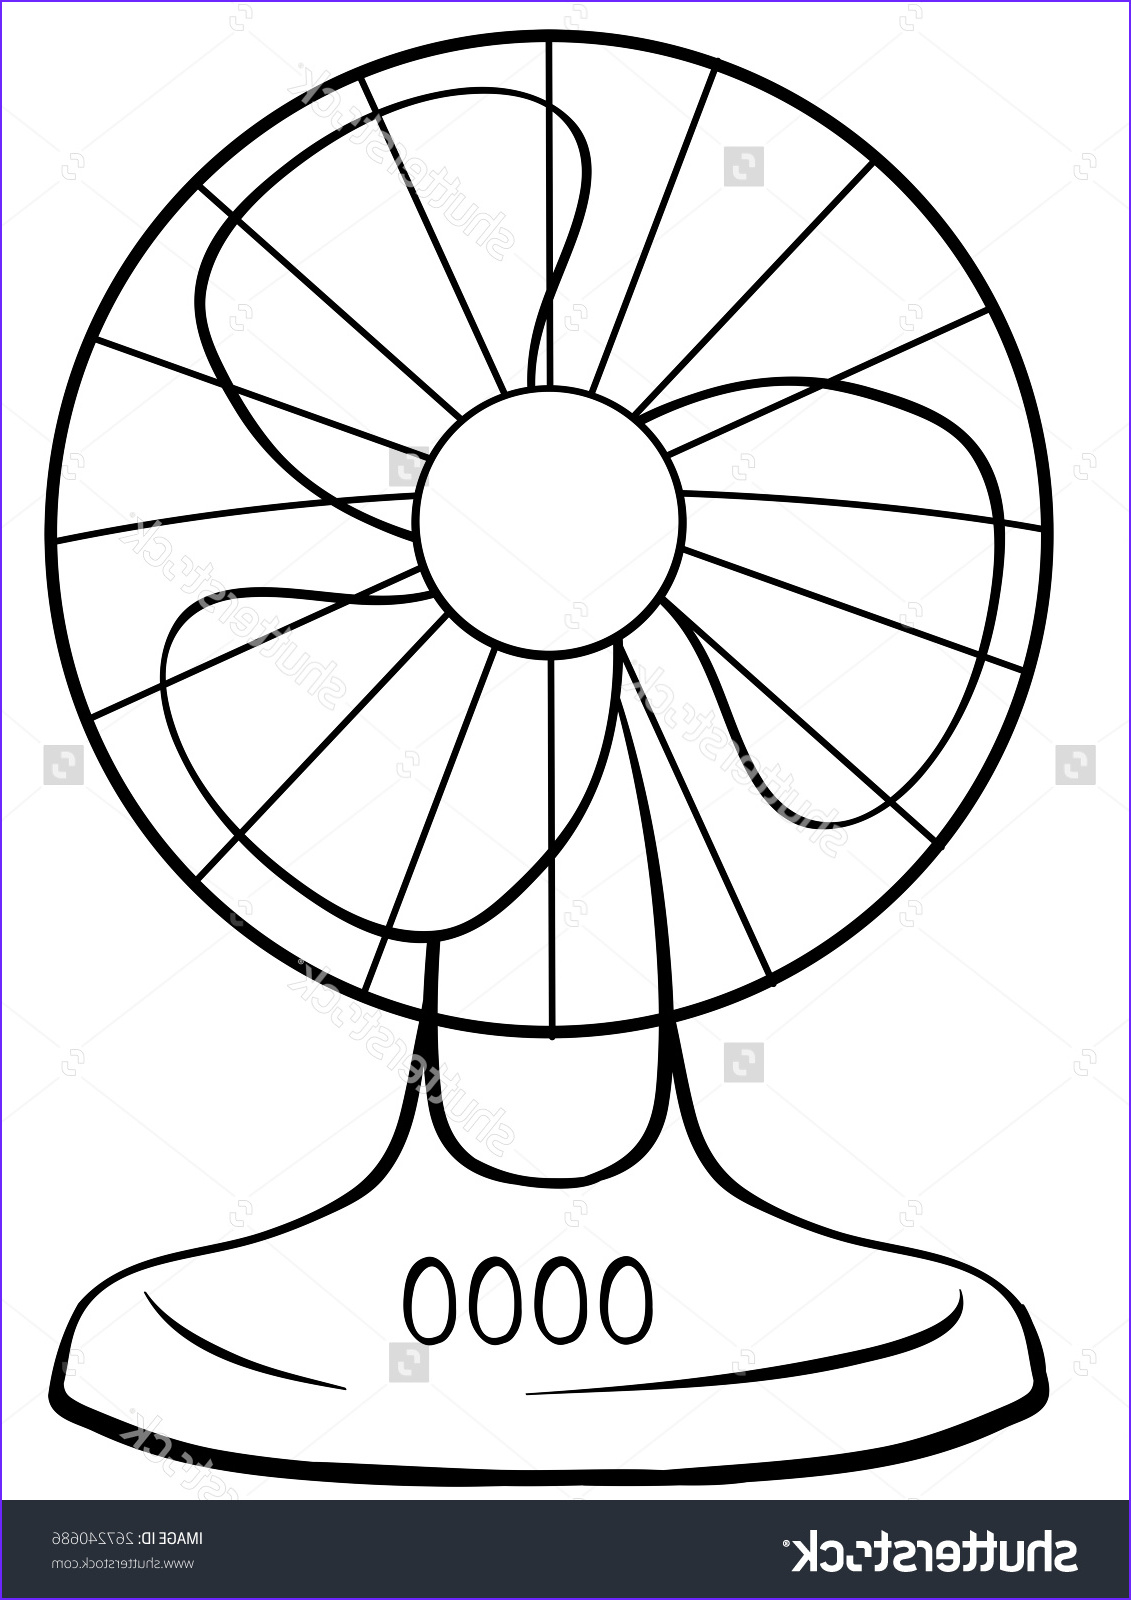 Coloring Fans New Photos Fan Clipart Drawing Pencil and In Color Fan Clipart Drawing